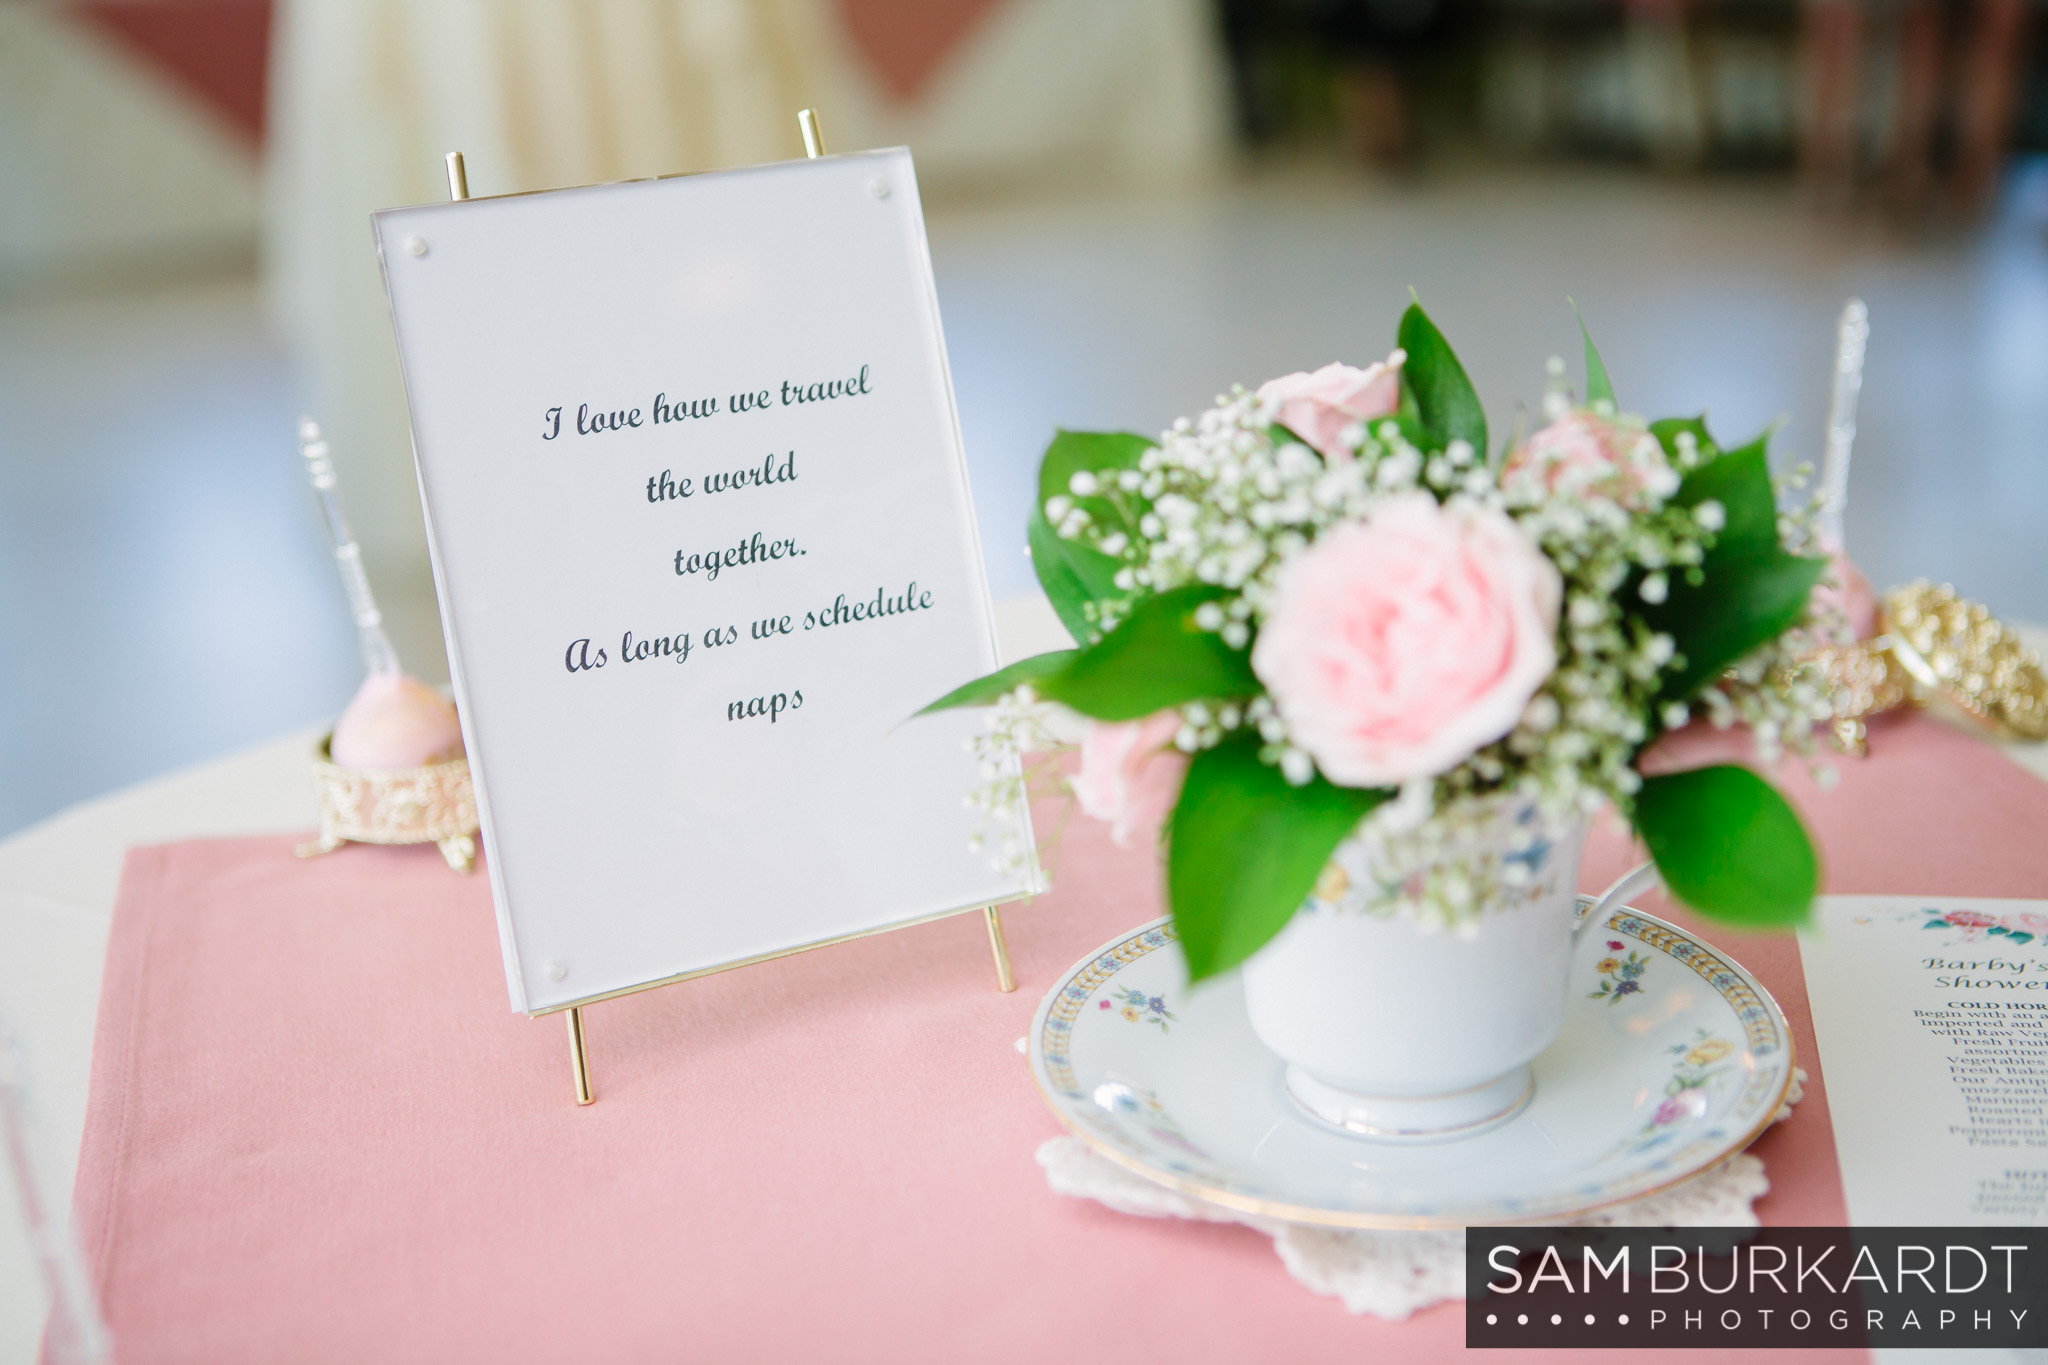 samburkardt_bridal_shower_trumbull_connecticut_photography_wedding_0011.jpg